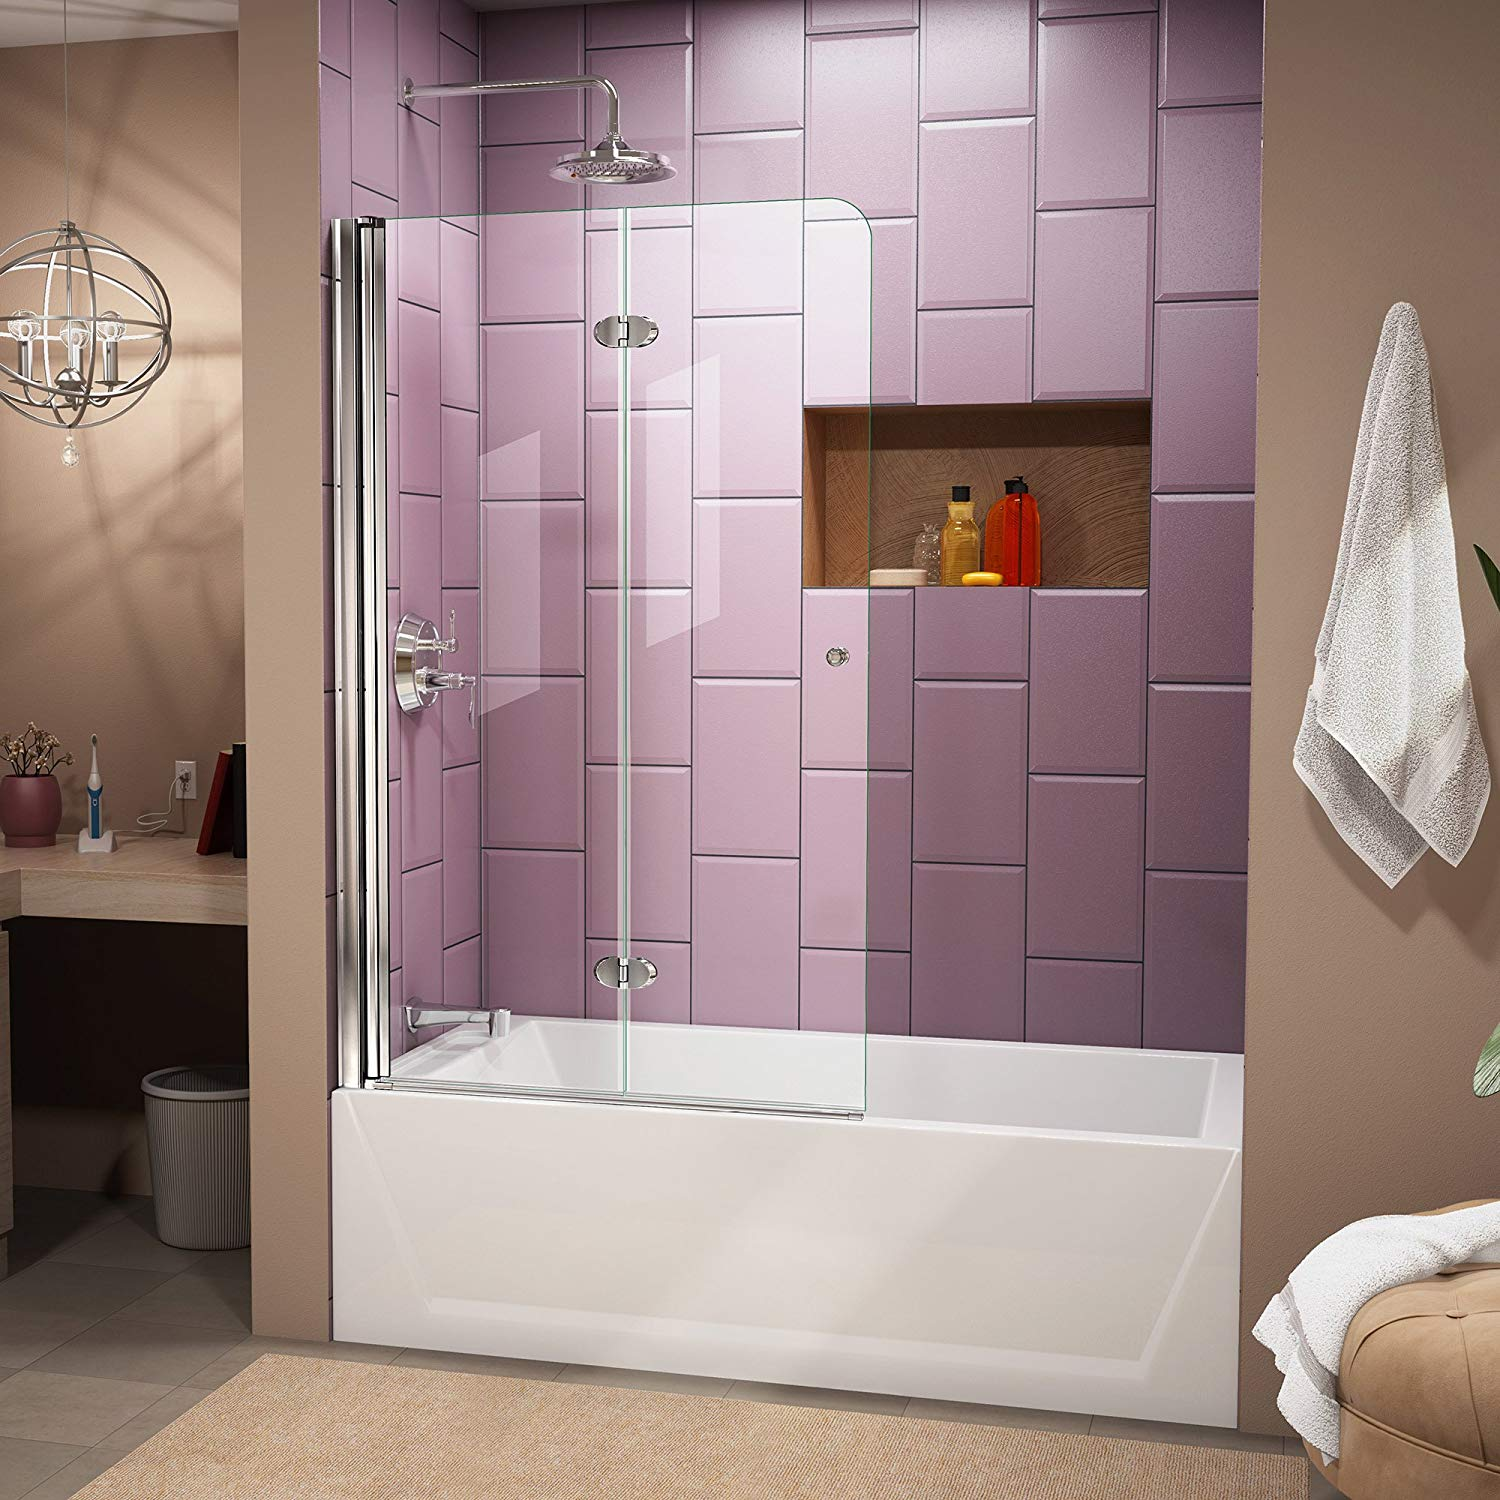 Top 10 Best Frameless Bathtub Shower Doors In 2019